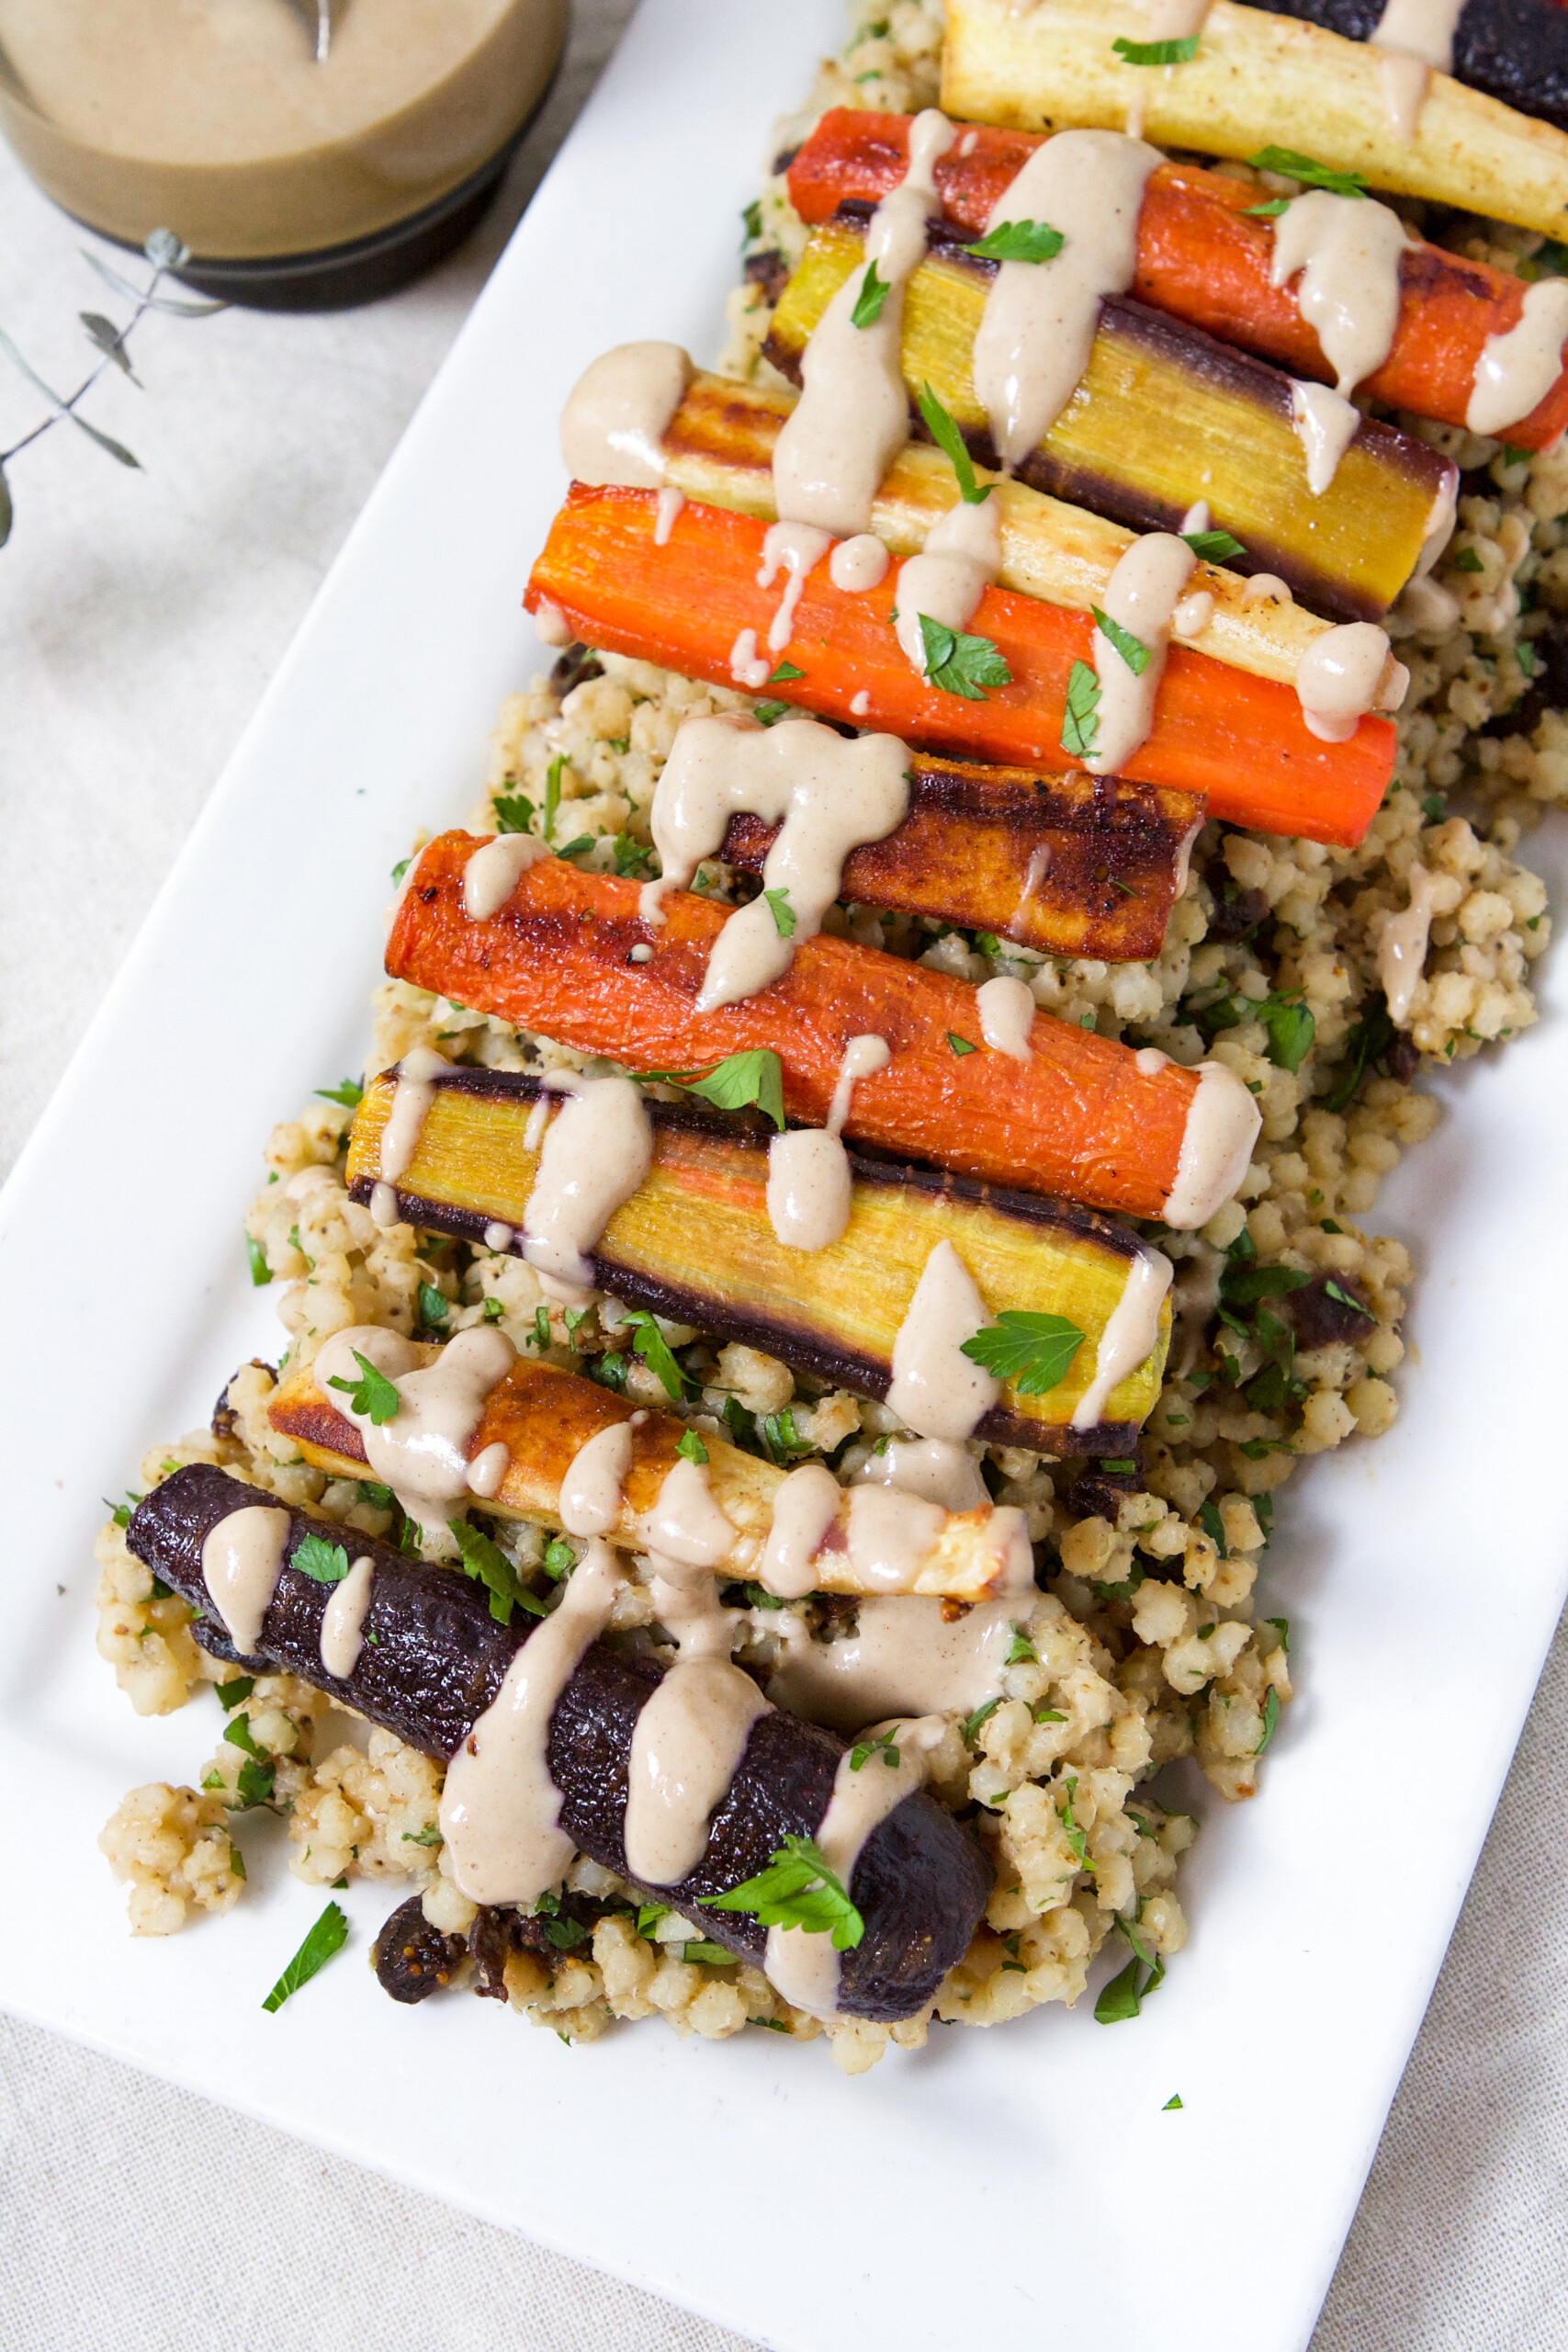 Roasted Root Vegetables & Sorghum Pilaf with Tahini Sauce | Zestful Kitchen